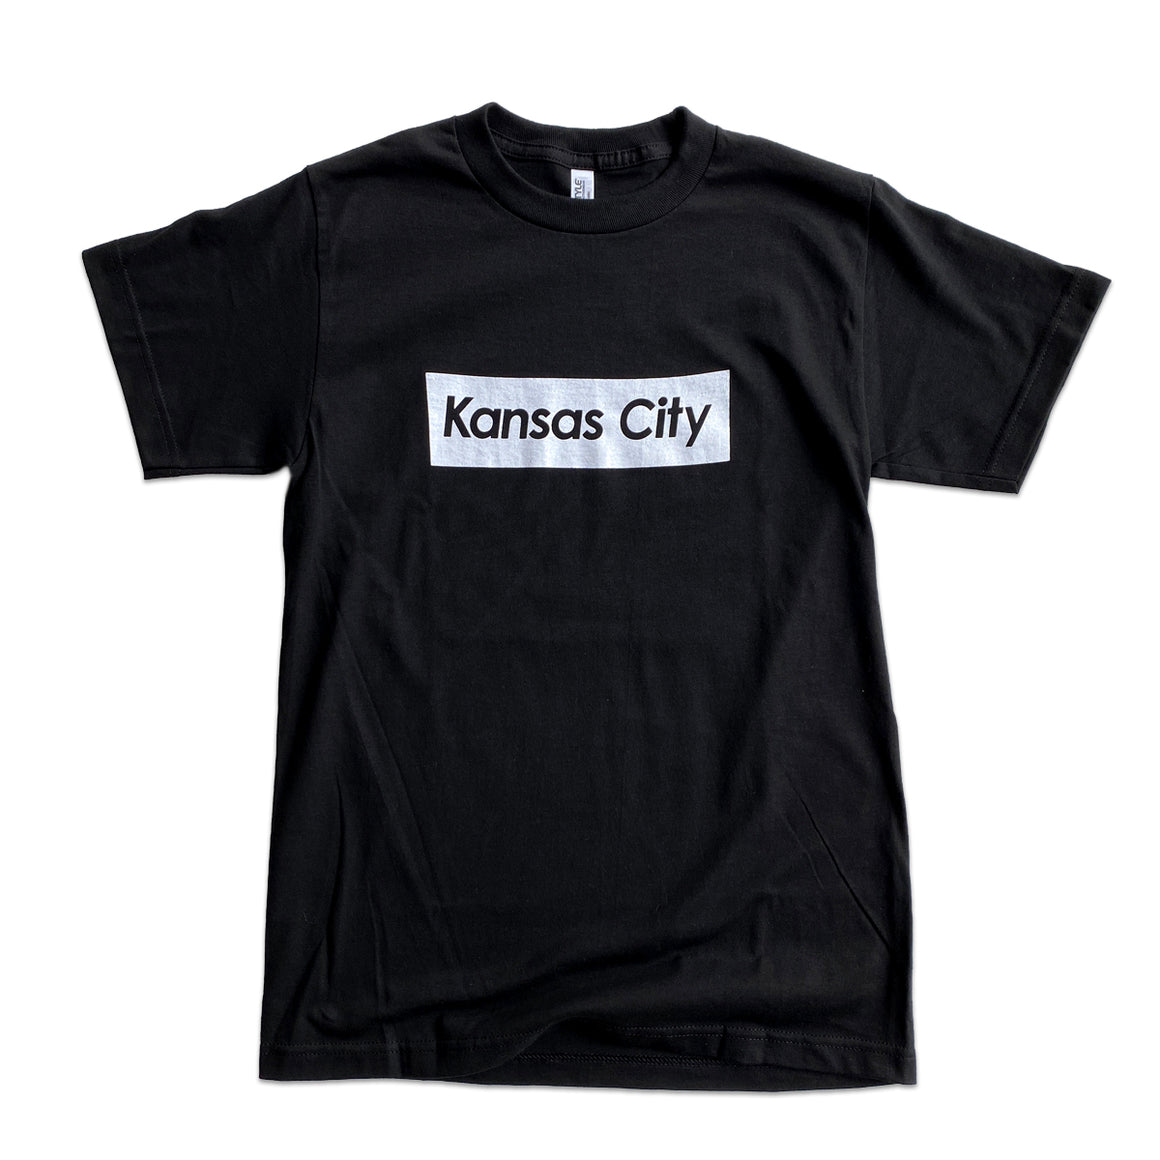 KCMO.CO | KANSAS CITY SUPREME T-SHIRT - BLACK/WHITE